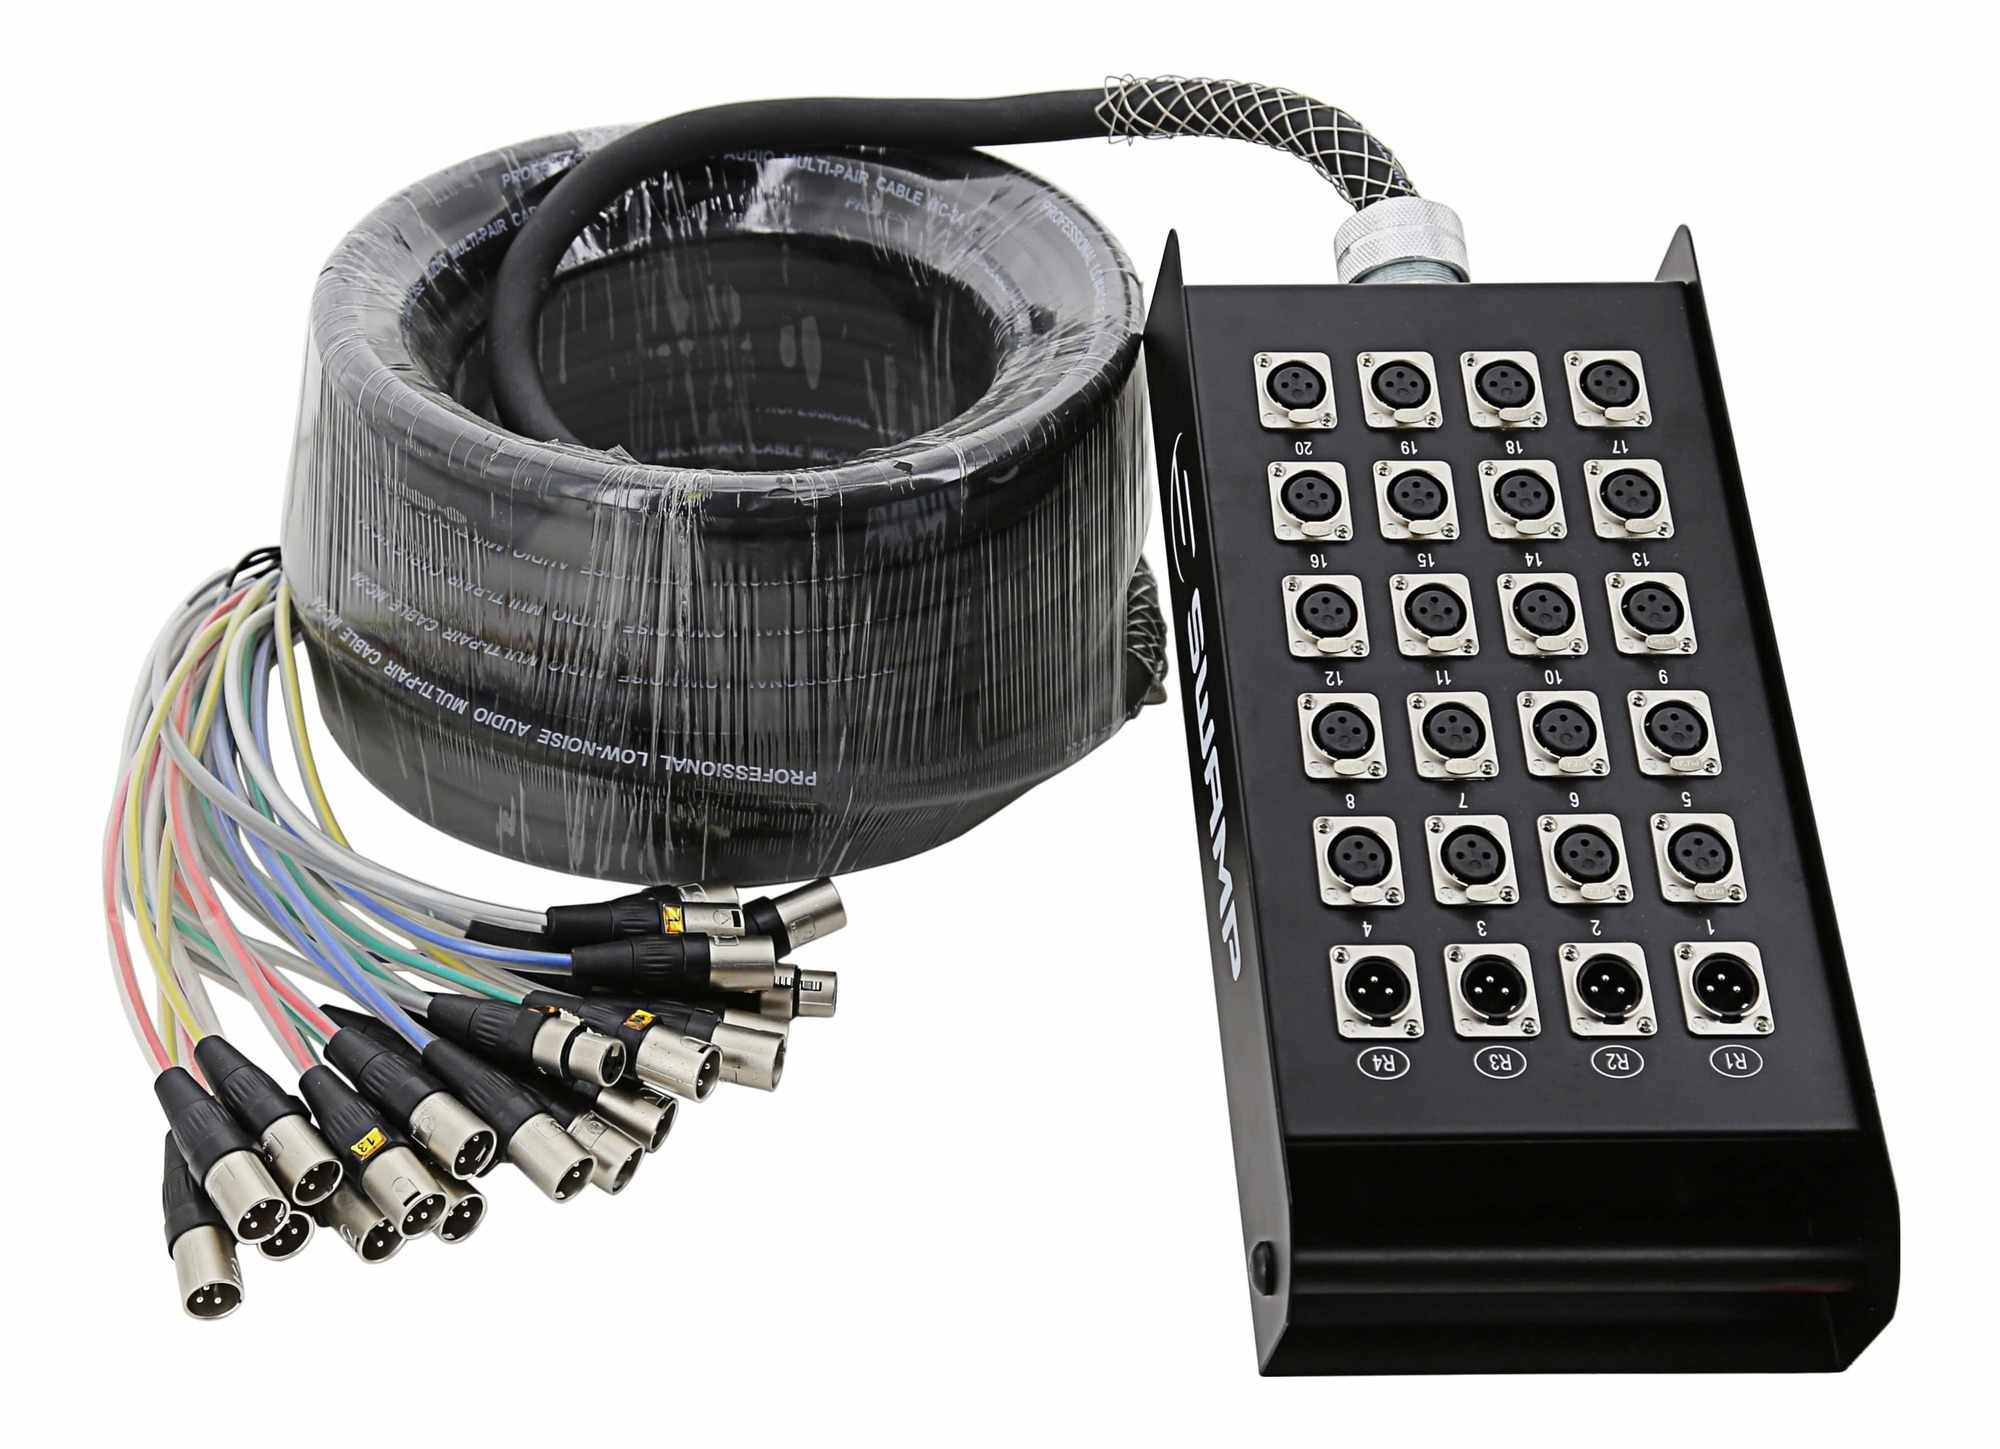 24 channel multicore cable w/ stage box - 20m